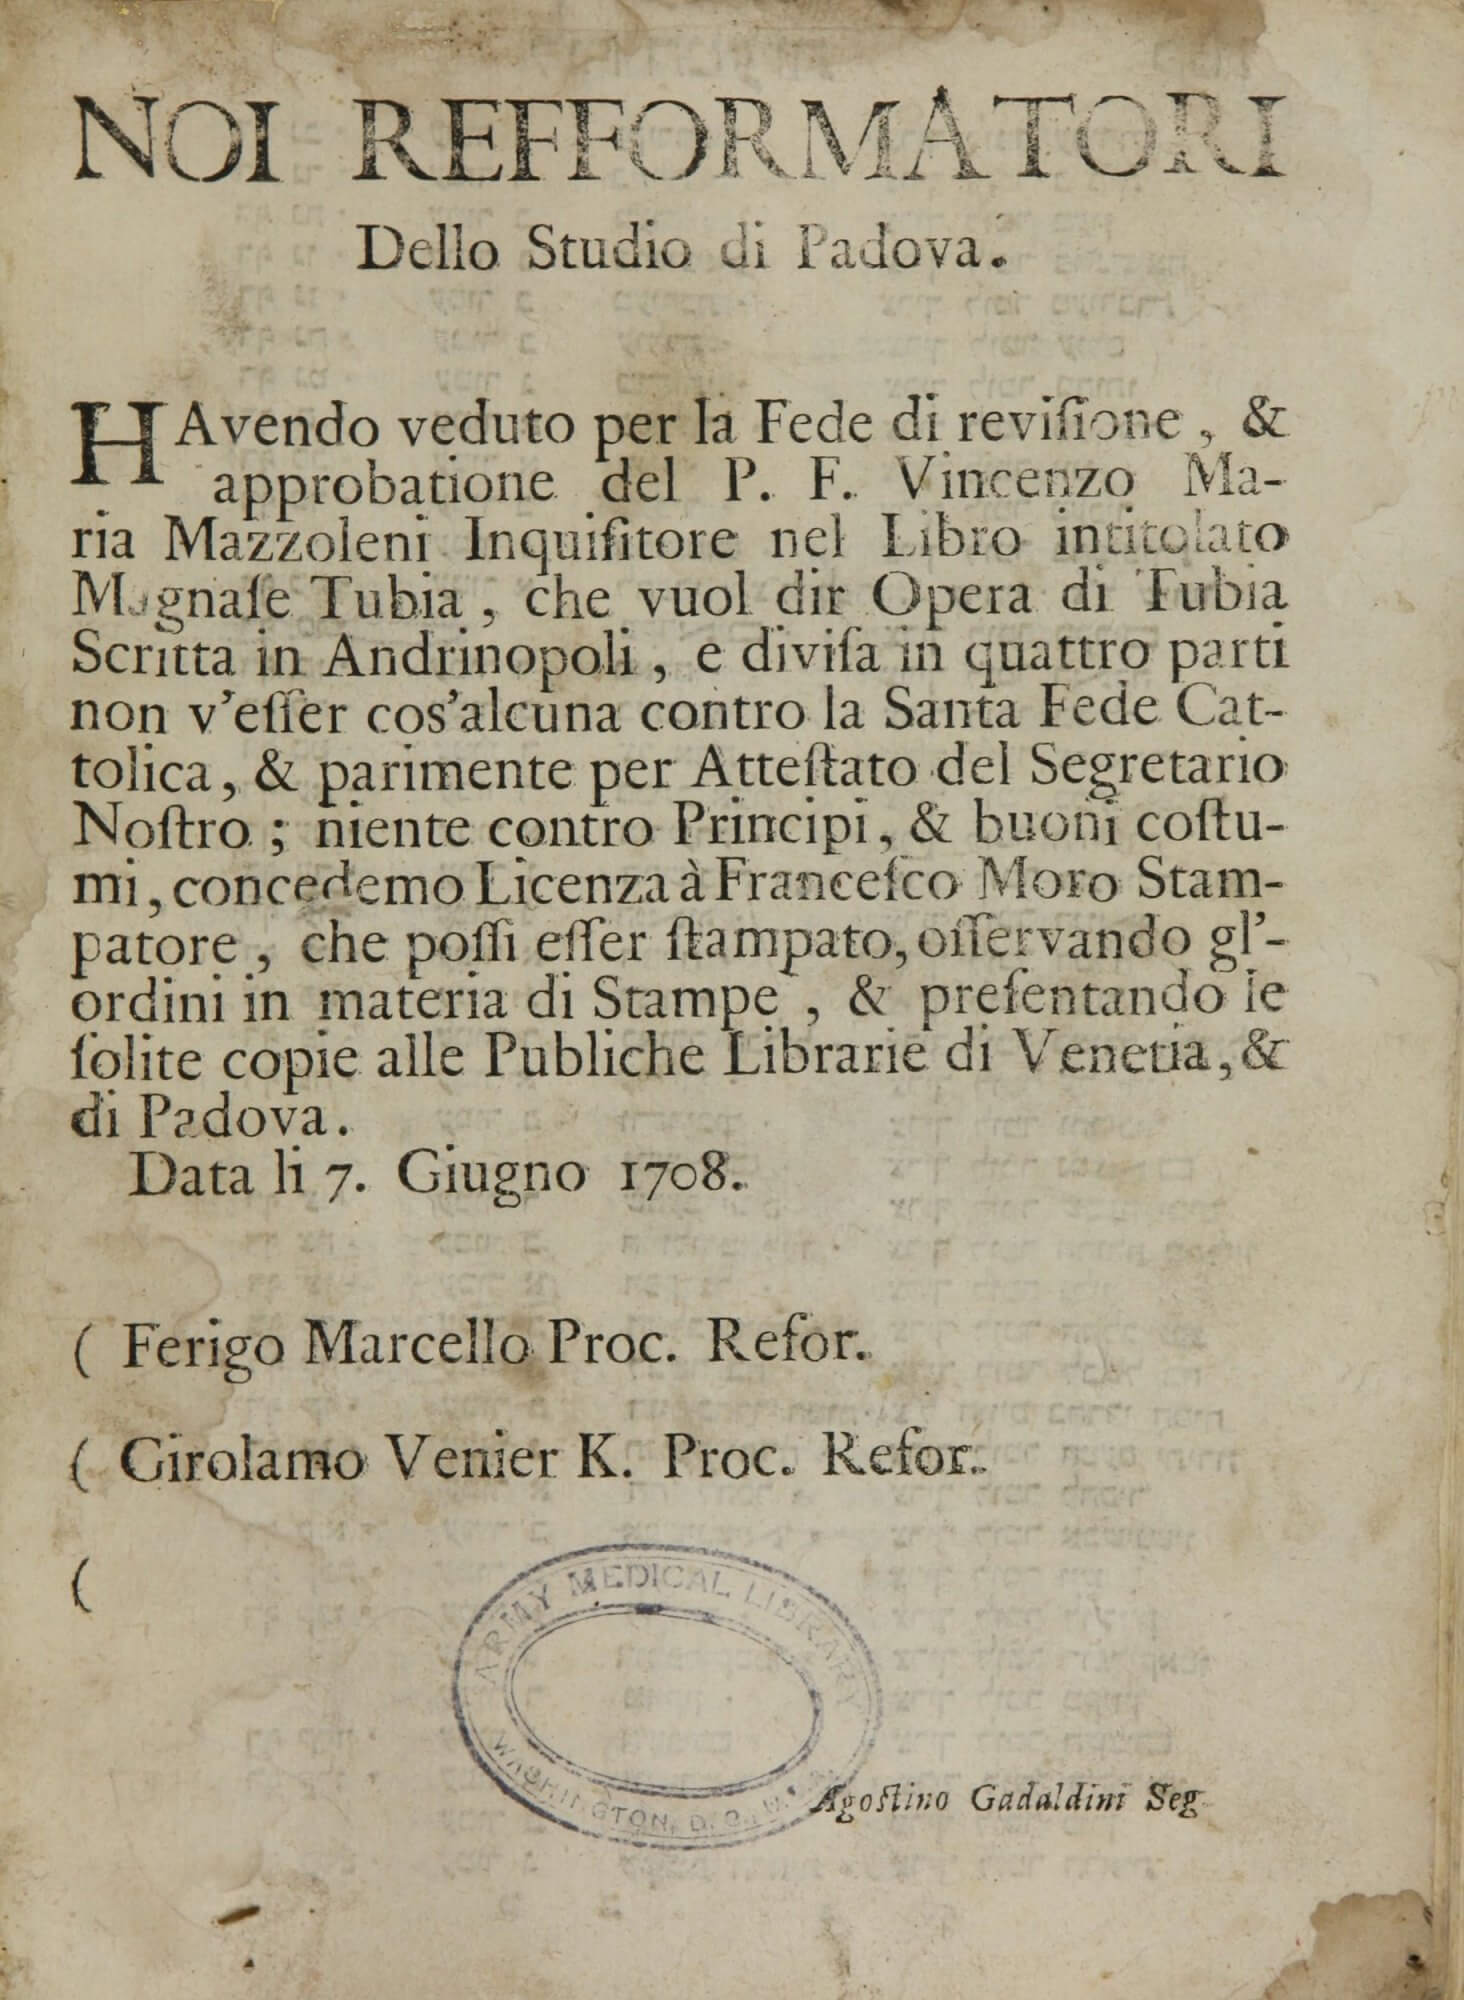 This imprimatur, the only page in Italian in this Hebrew encyclopedia, verifies that the book may legally be printed because the Inquisitors have found it to contain no anti-Catholic, anti-government, or immoral content.